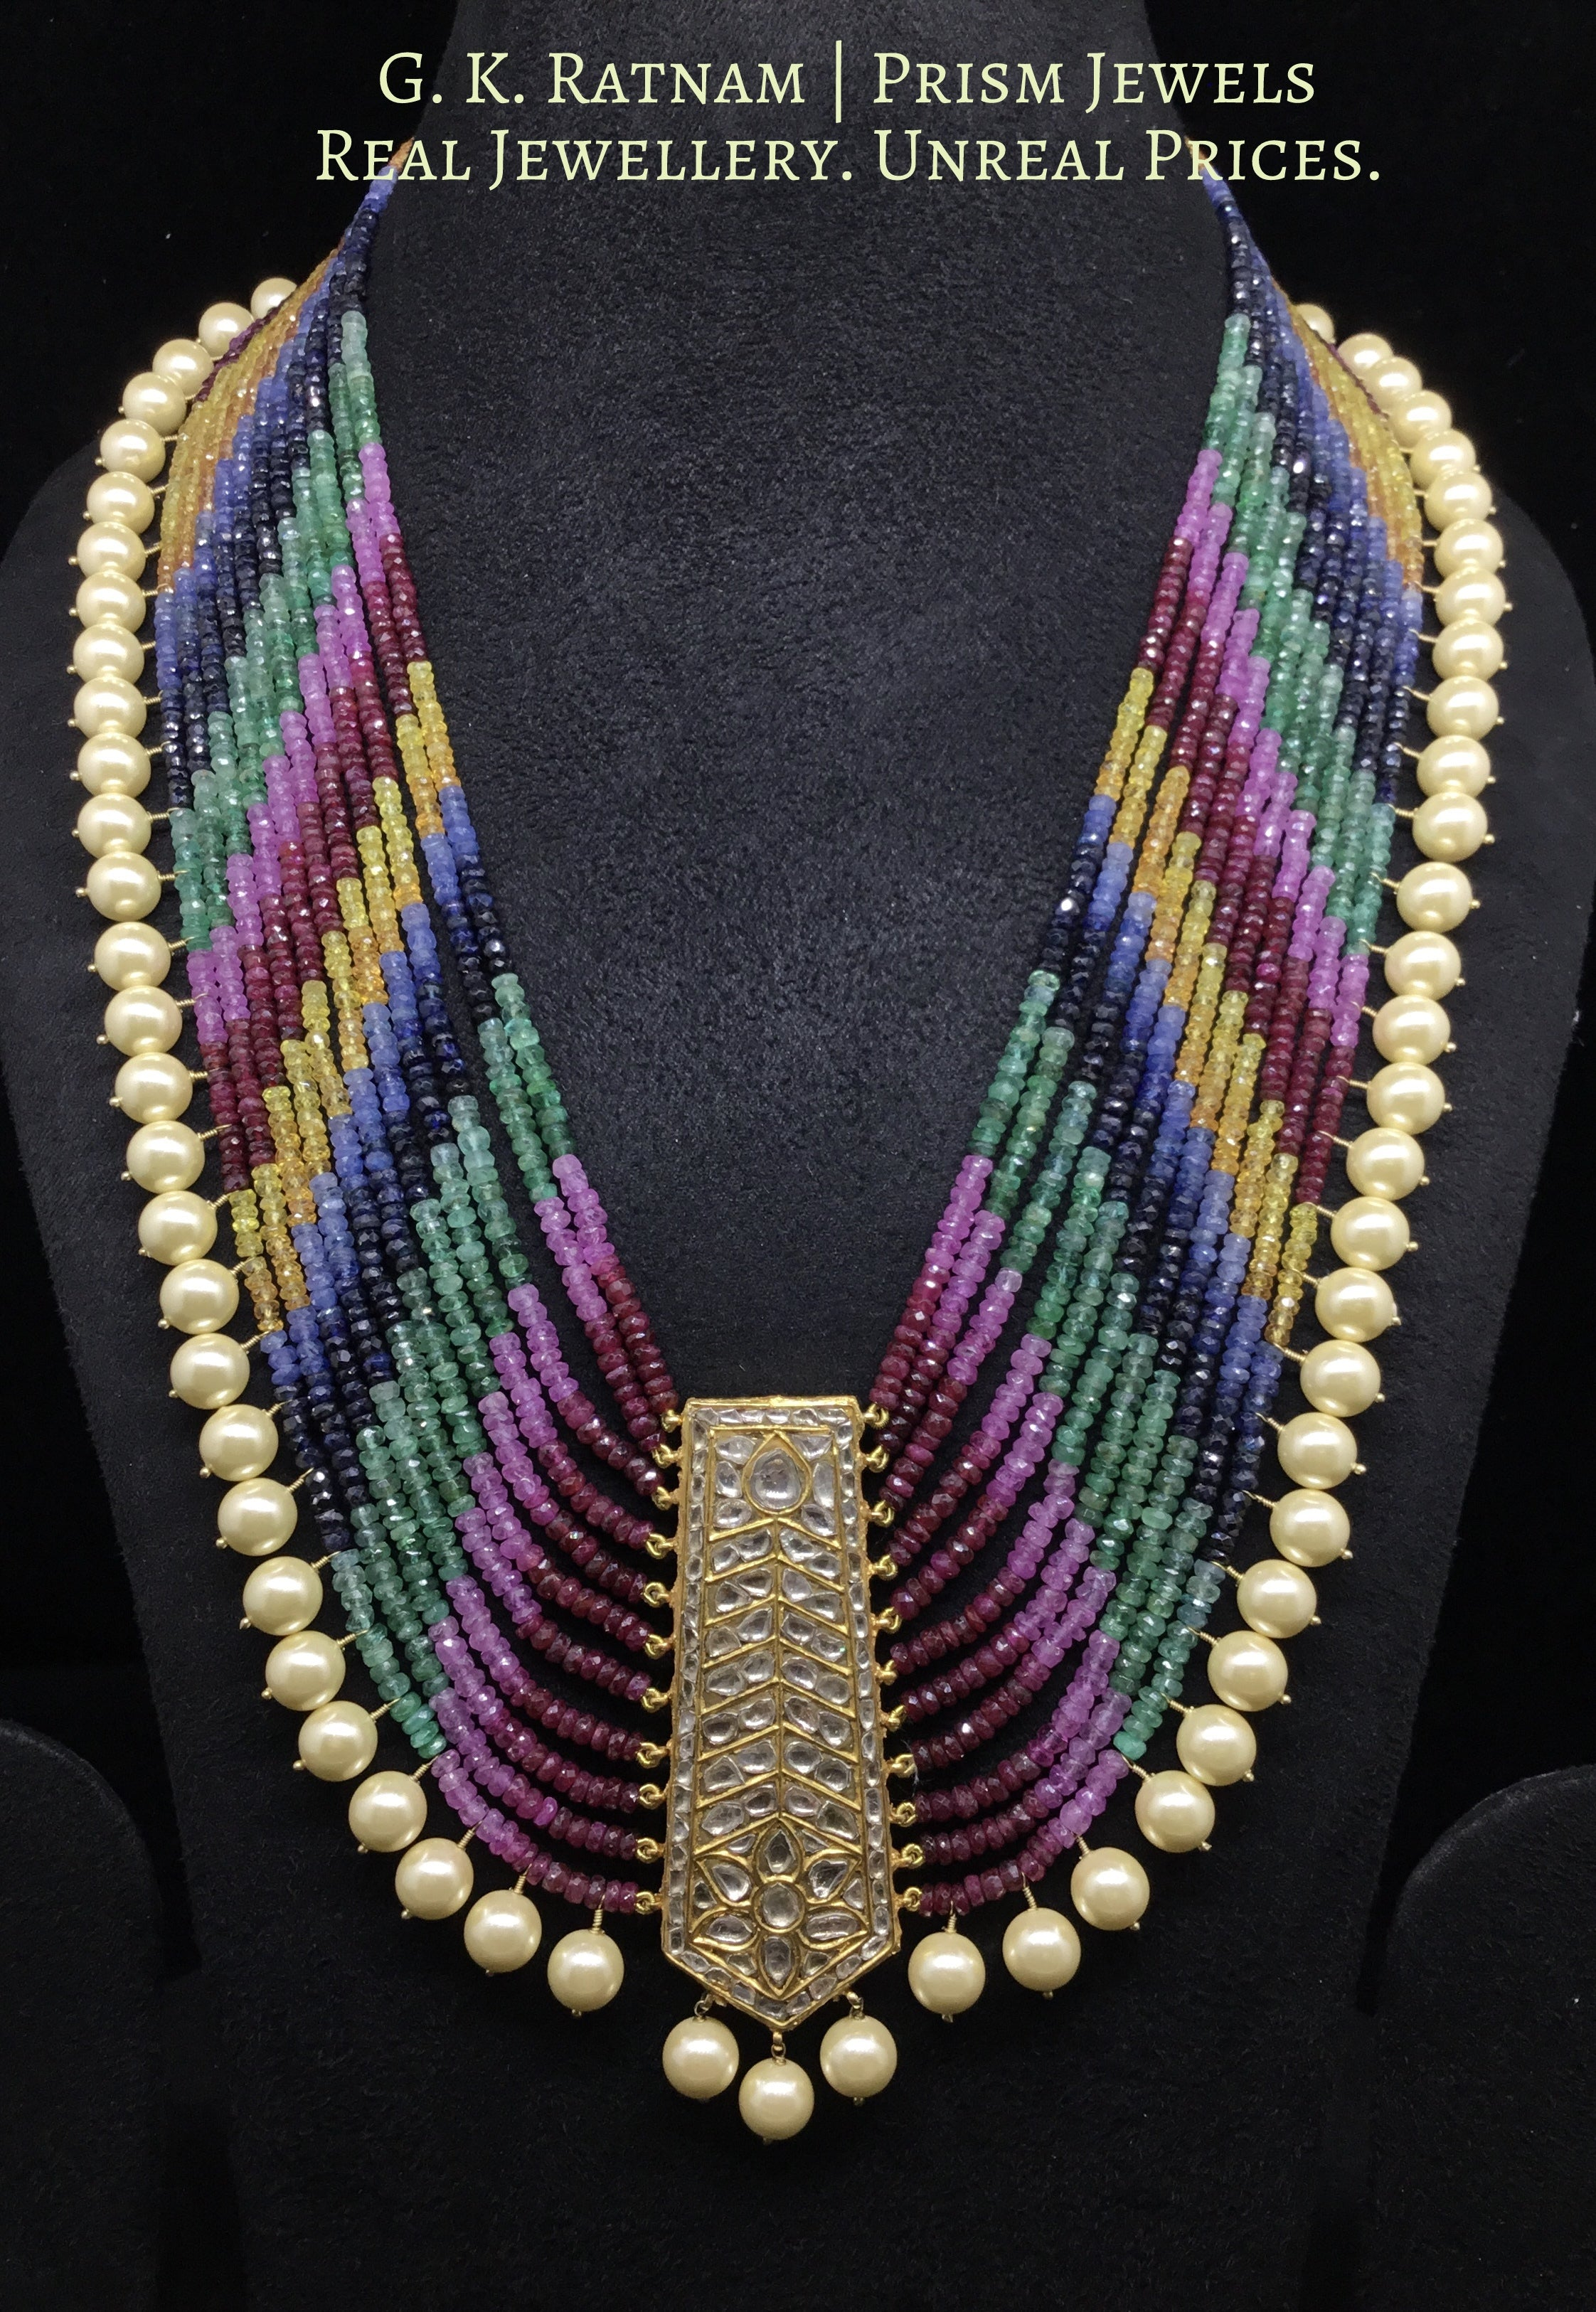 23k Gold and Diamond Polki tie-shaped Pendant Set strung with natural multi-color rainbow beads